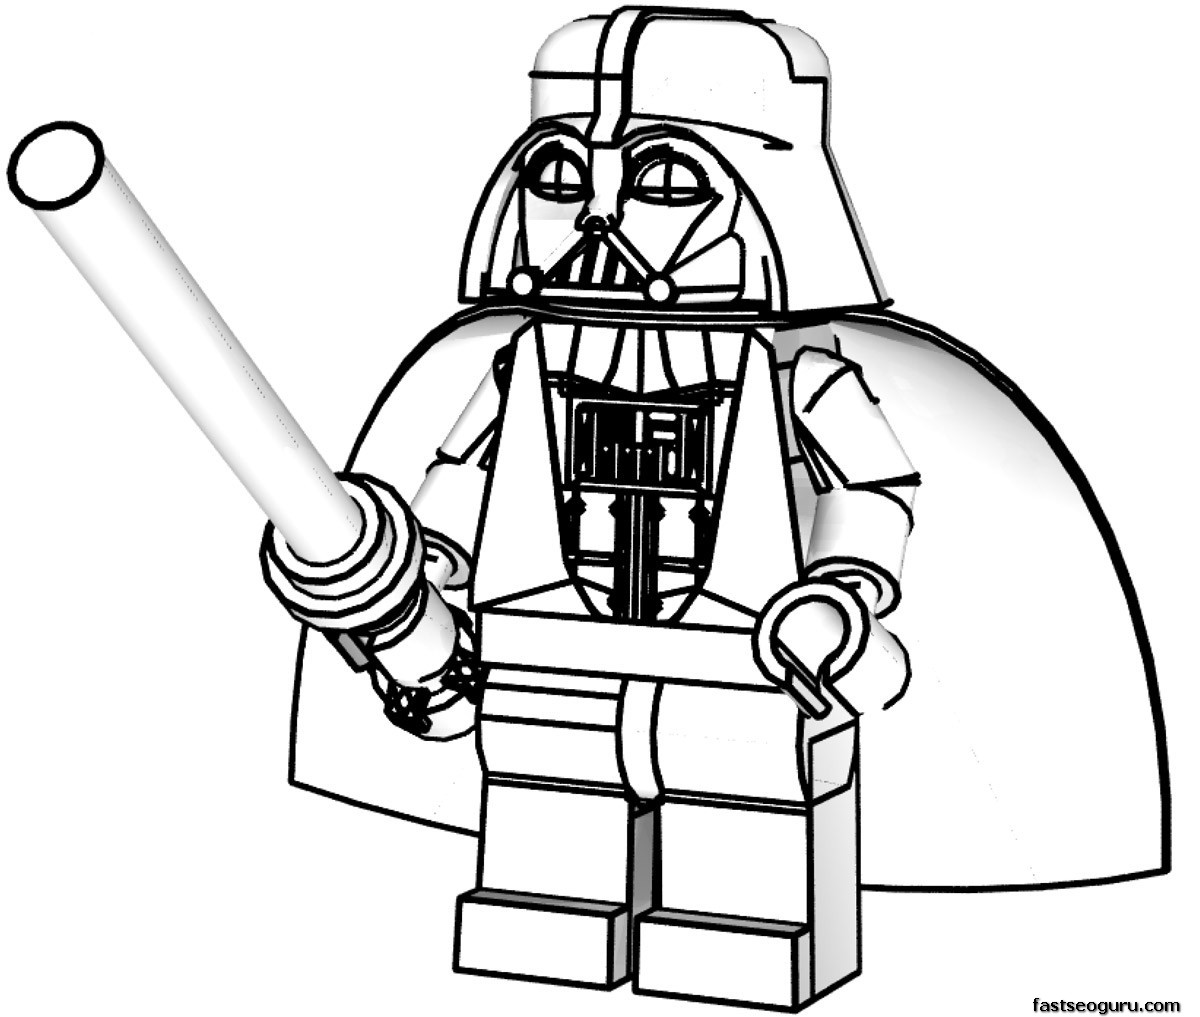 free lego star wars printables lego star wars coloring pages best coloring pages for kids star printables wars free lego